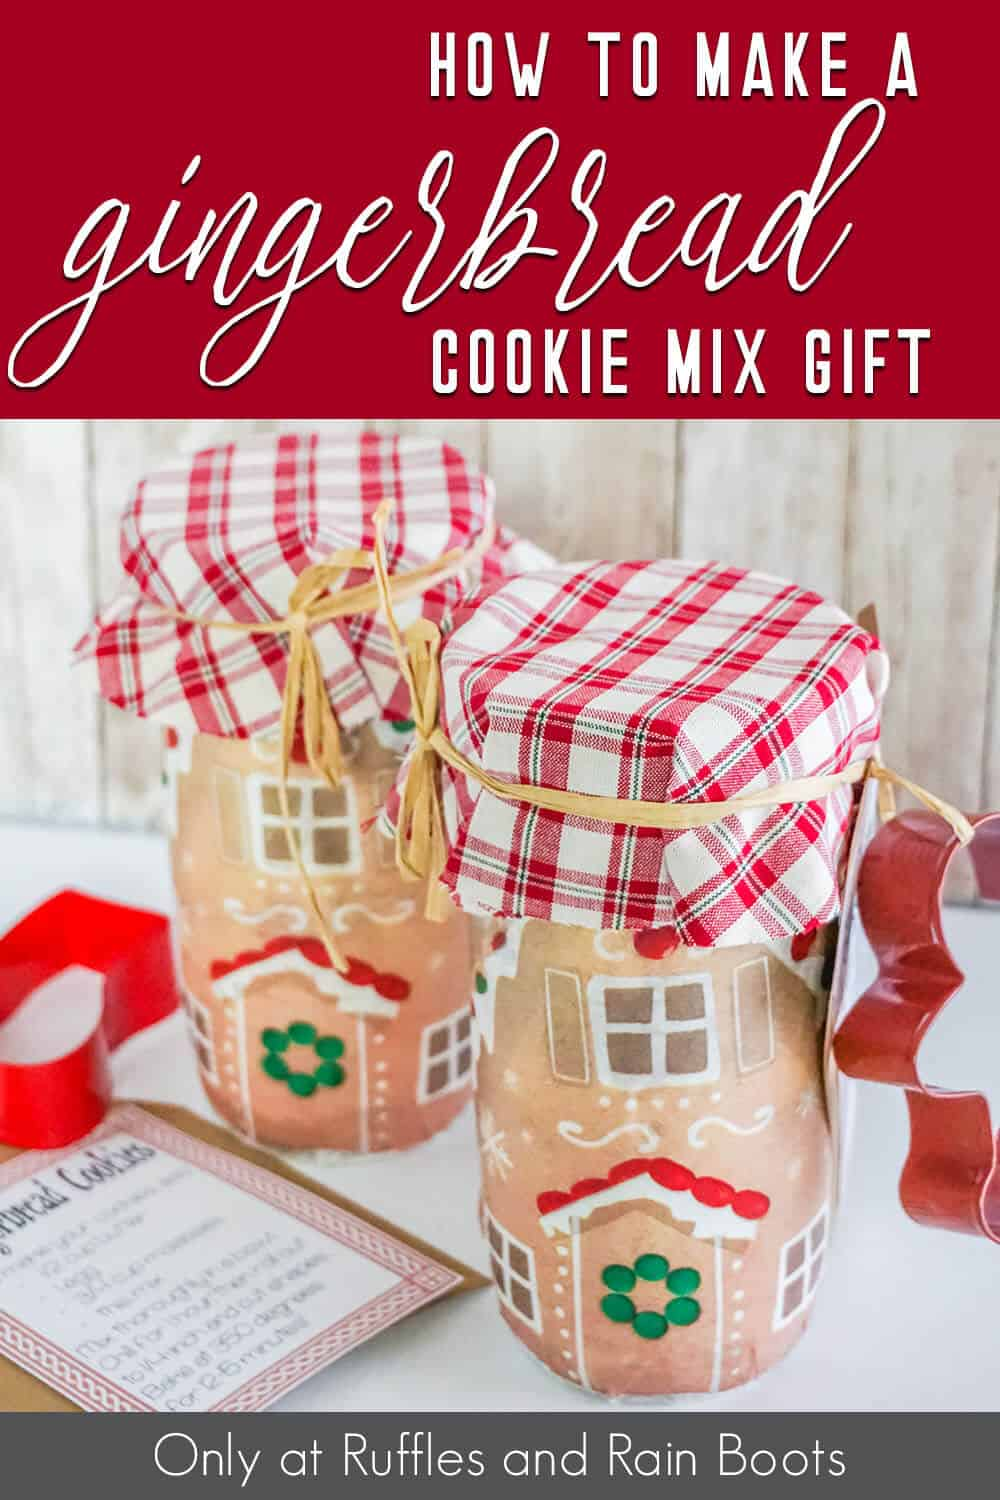 gingerbread cookie mix in a jar gift idea with text which reads how to make a gingerbread cookie mix gift